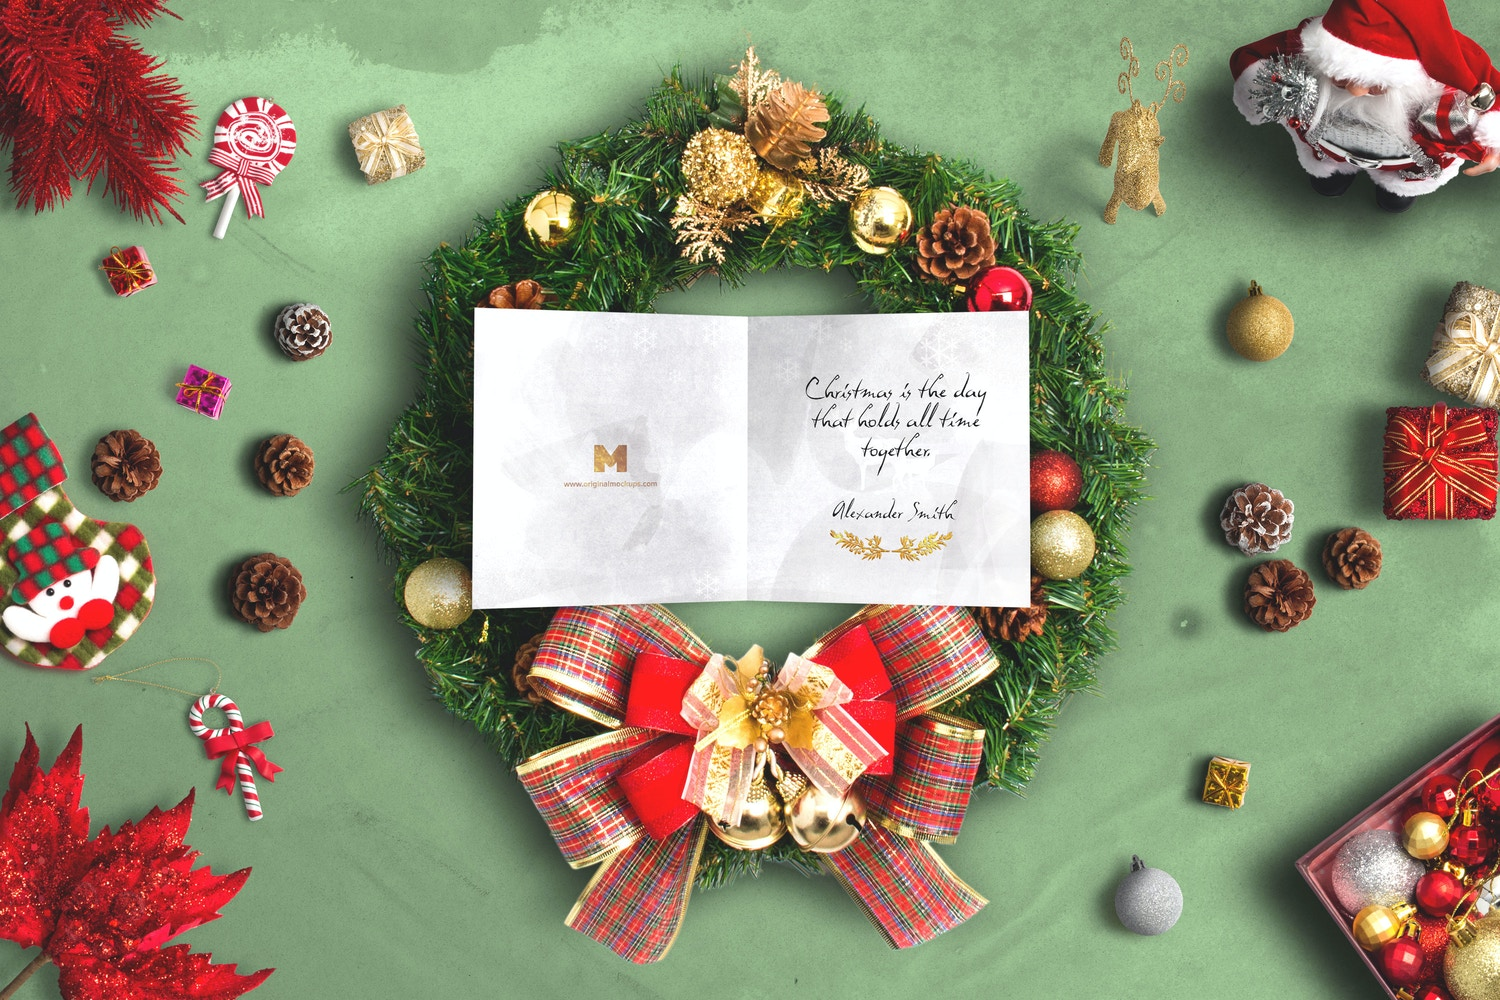 Christmas Header And Hero Scene Mockup 01 por Original Mockups en Original Mockups